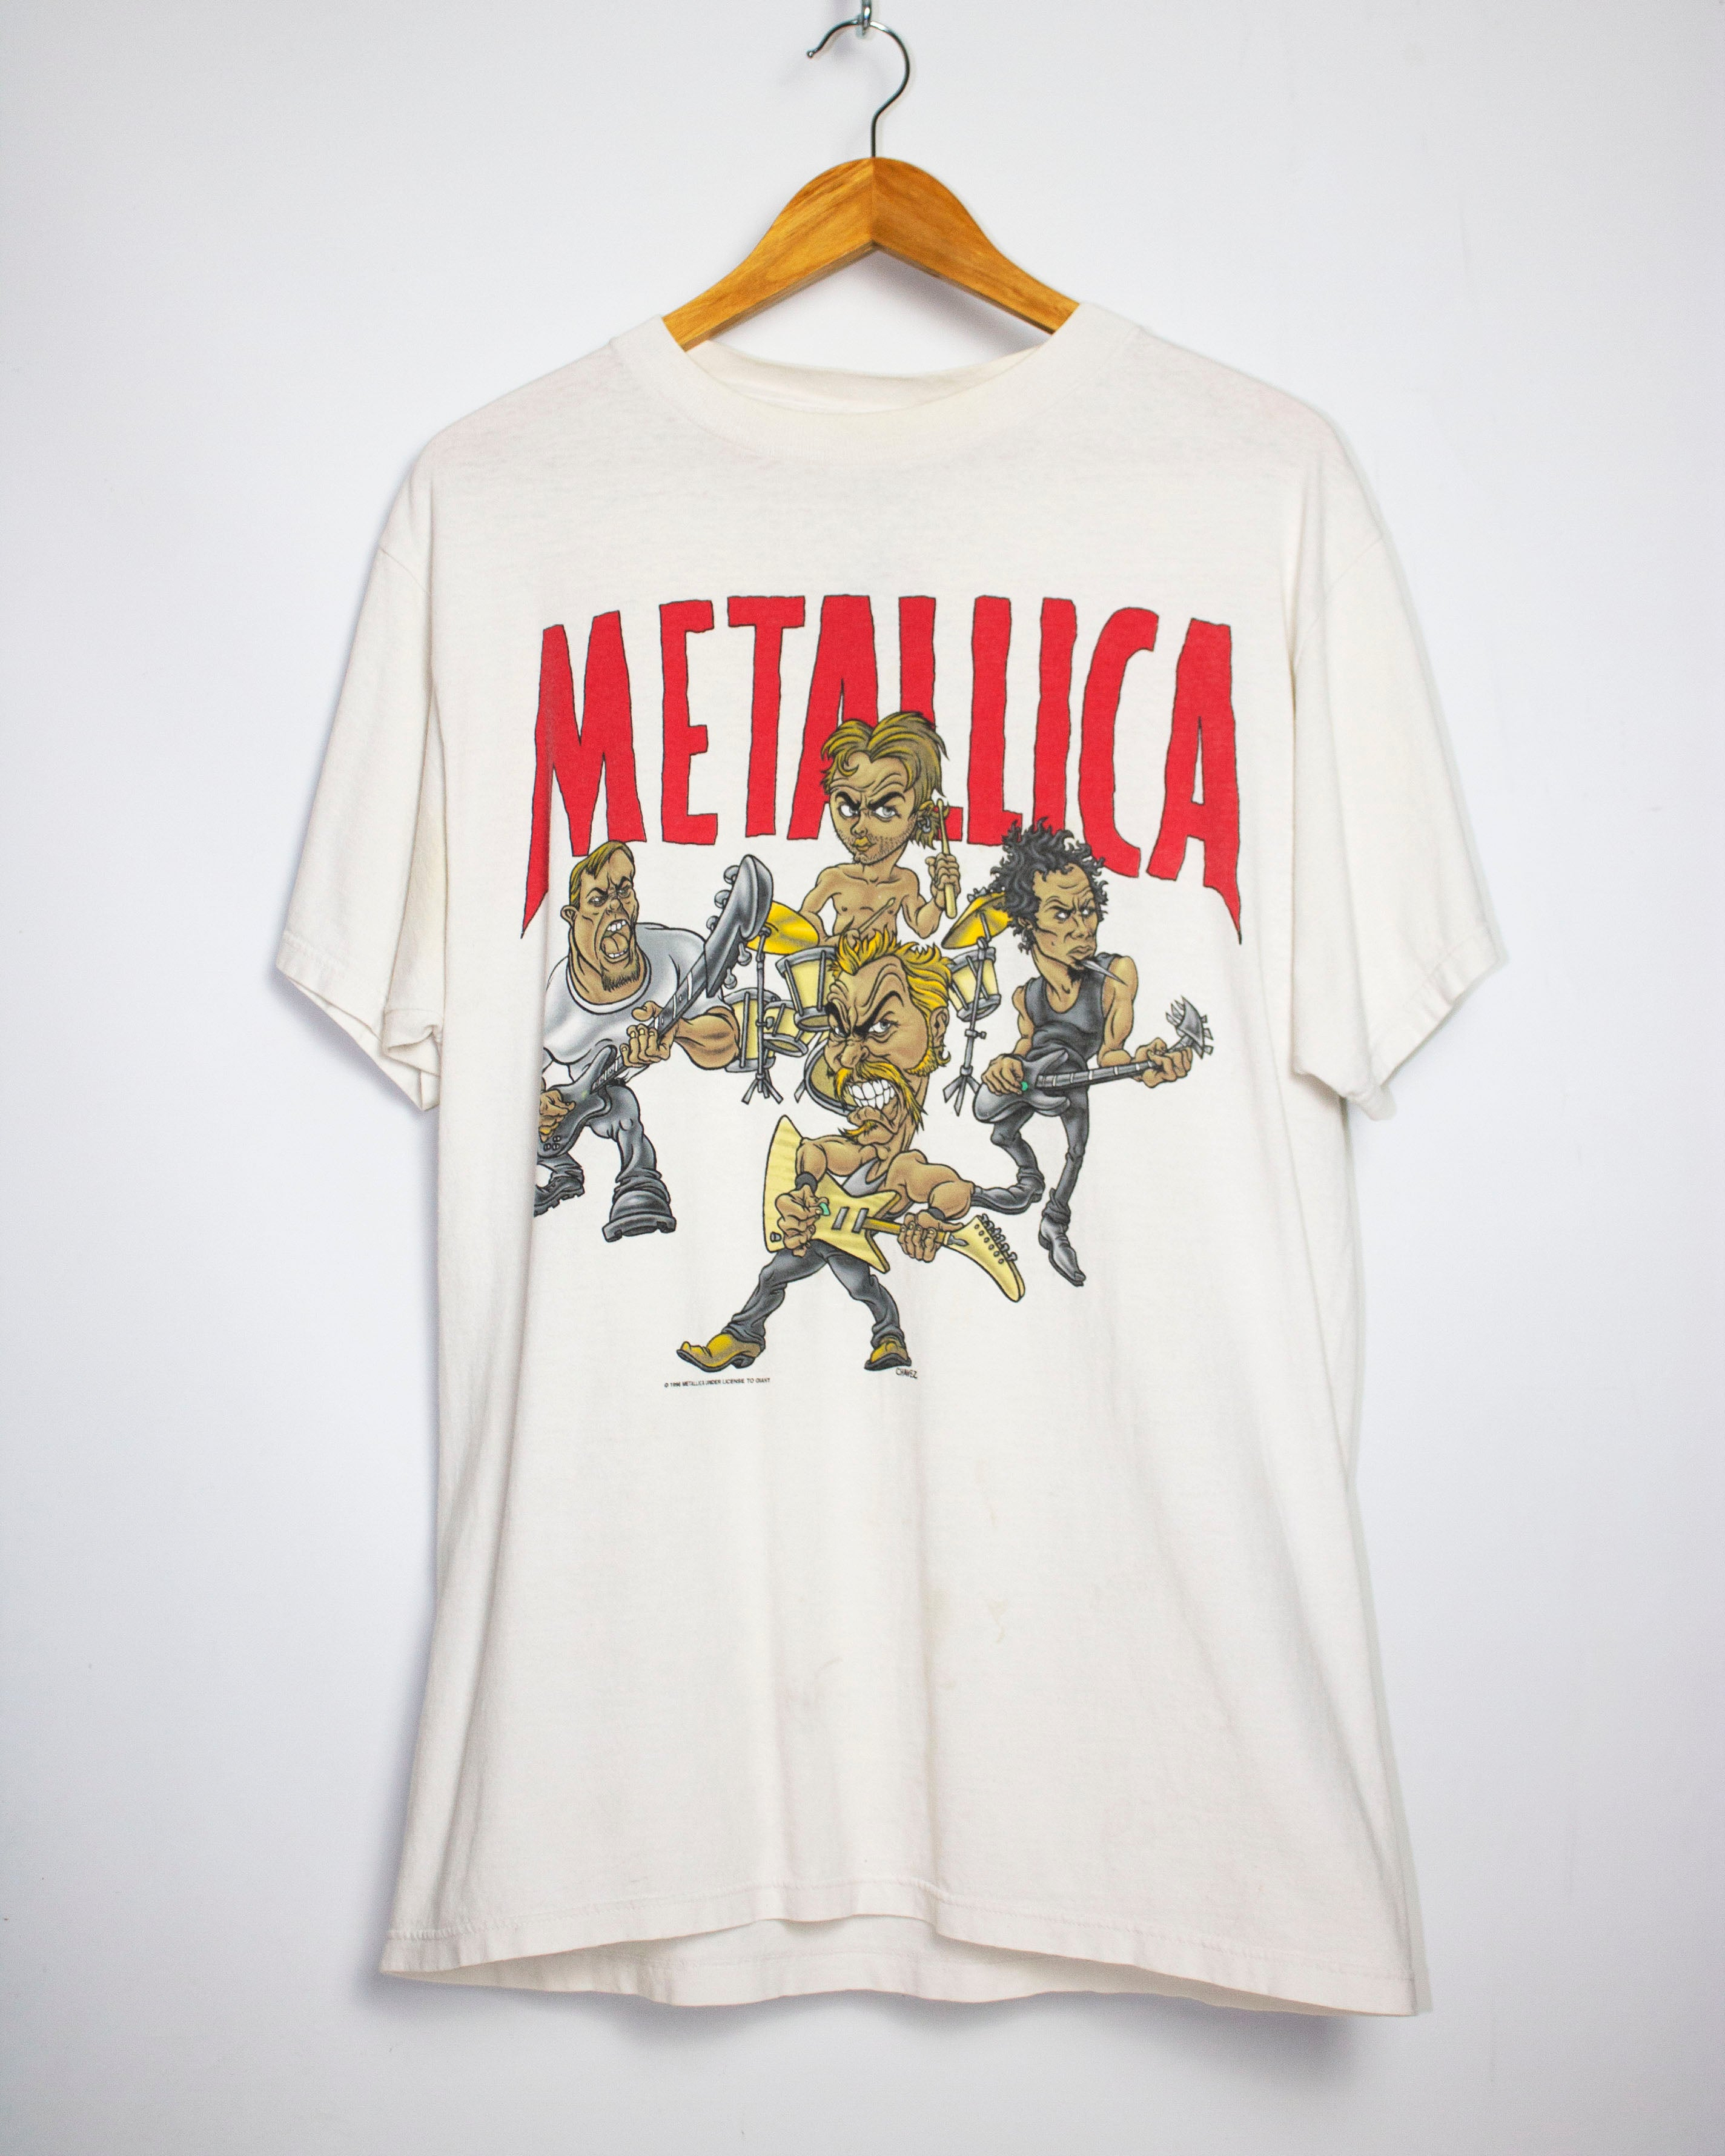 Vintage 1996 Metallica Poor Touring Me Tour T-Shirt Sz L